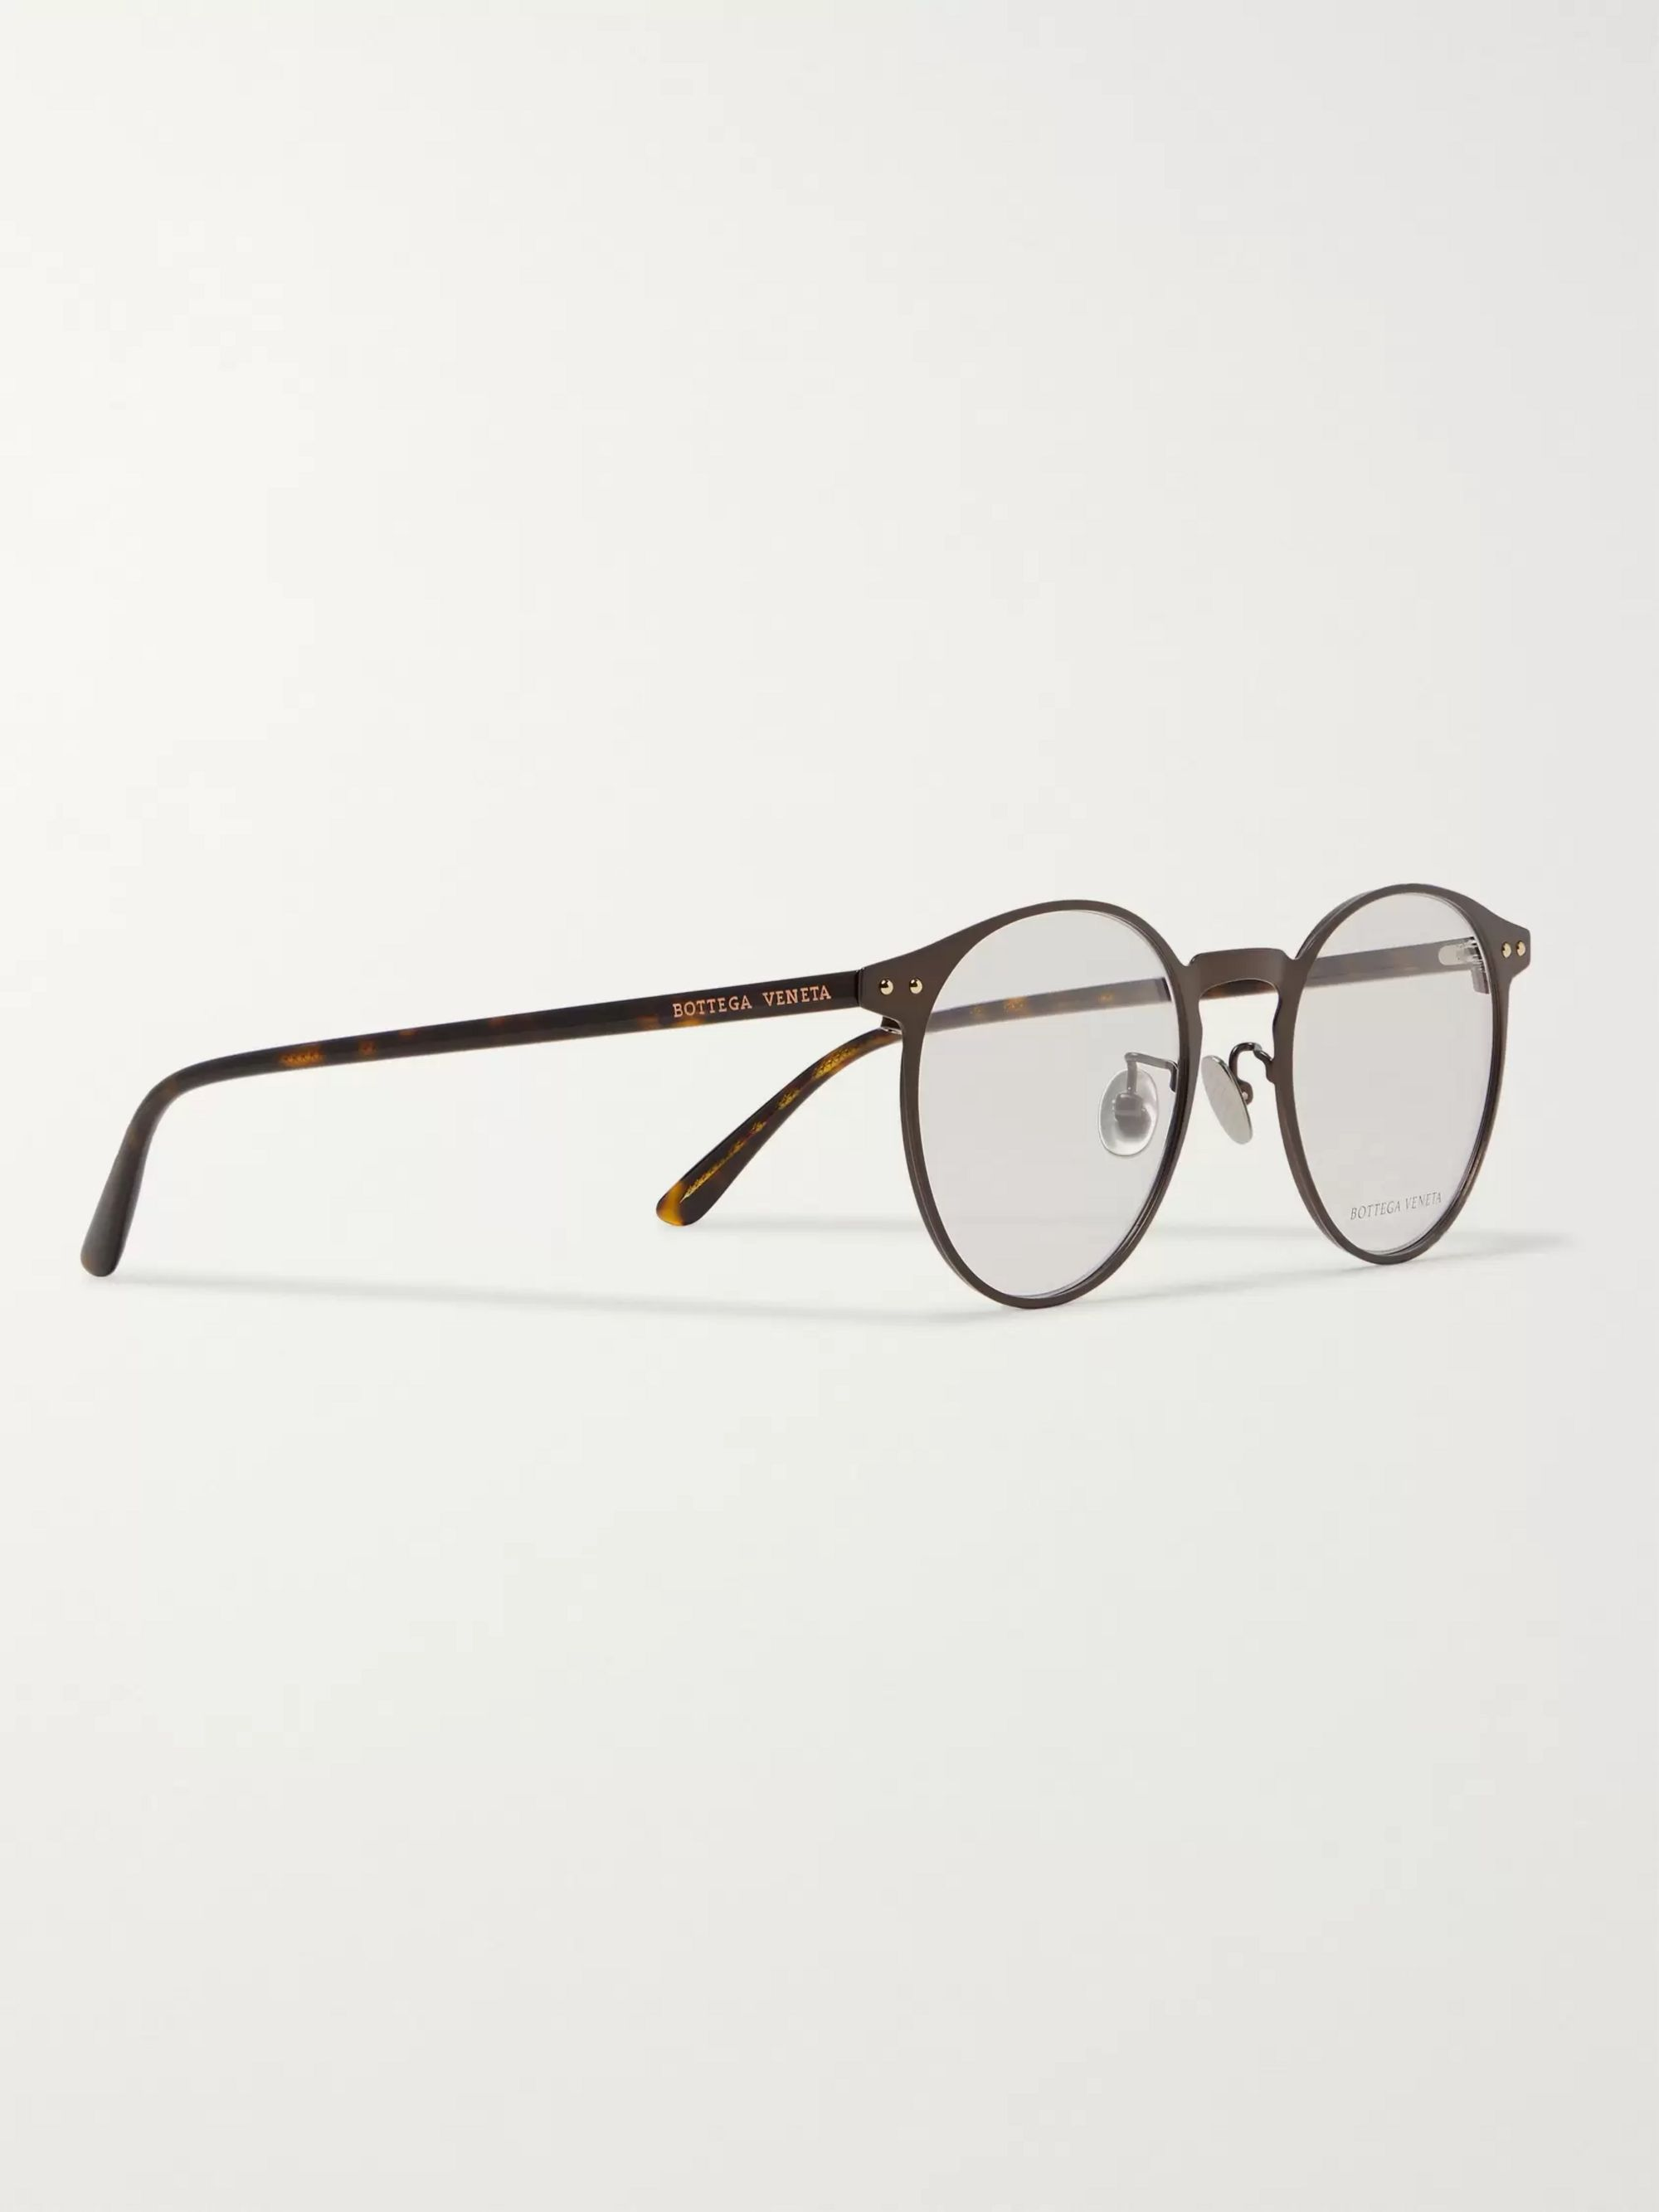 Bottega Veneta Round-Frame Metal and Tortoiseshell Acetate Optical Glasses